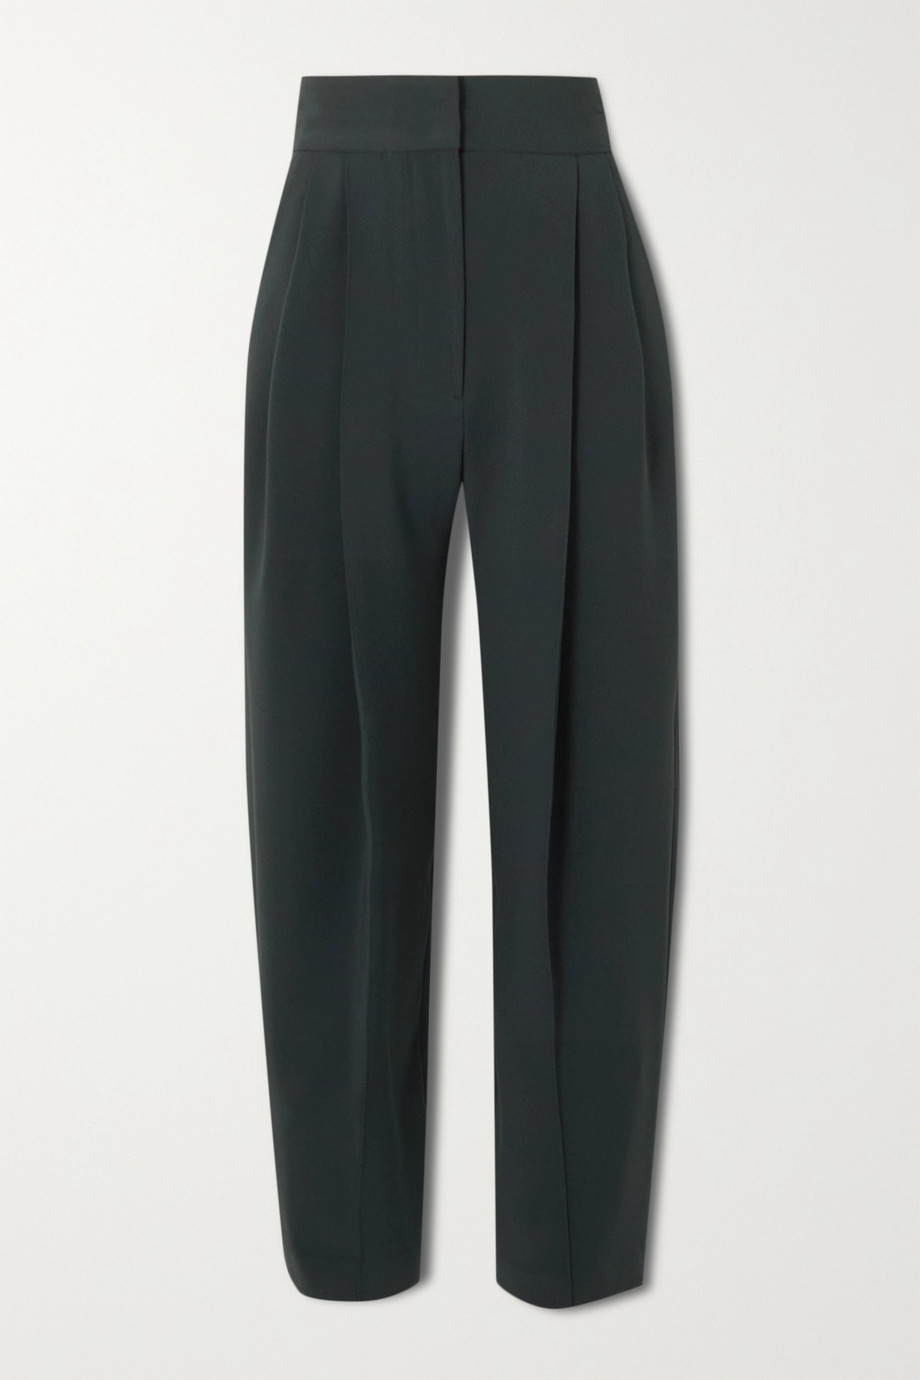 LOW CLASSIC Pintucked crepe wide-leg pants